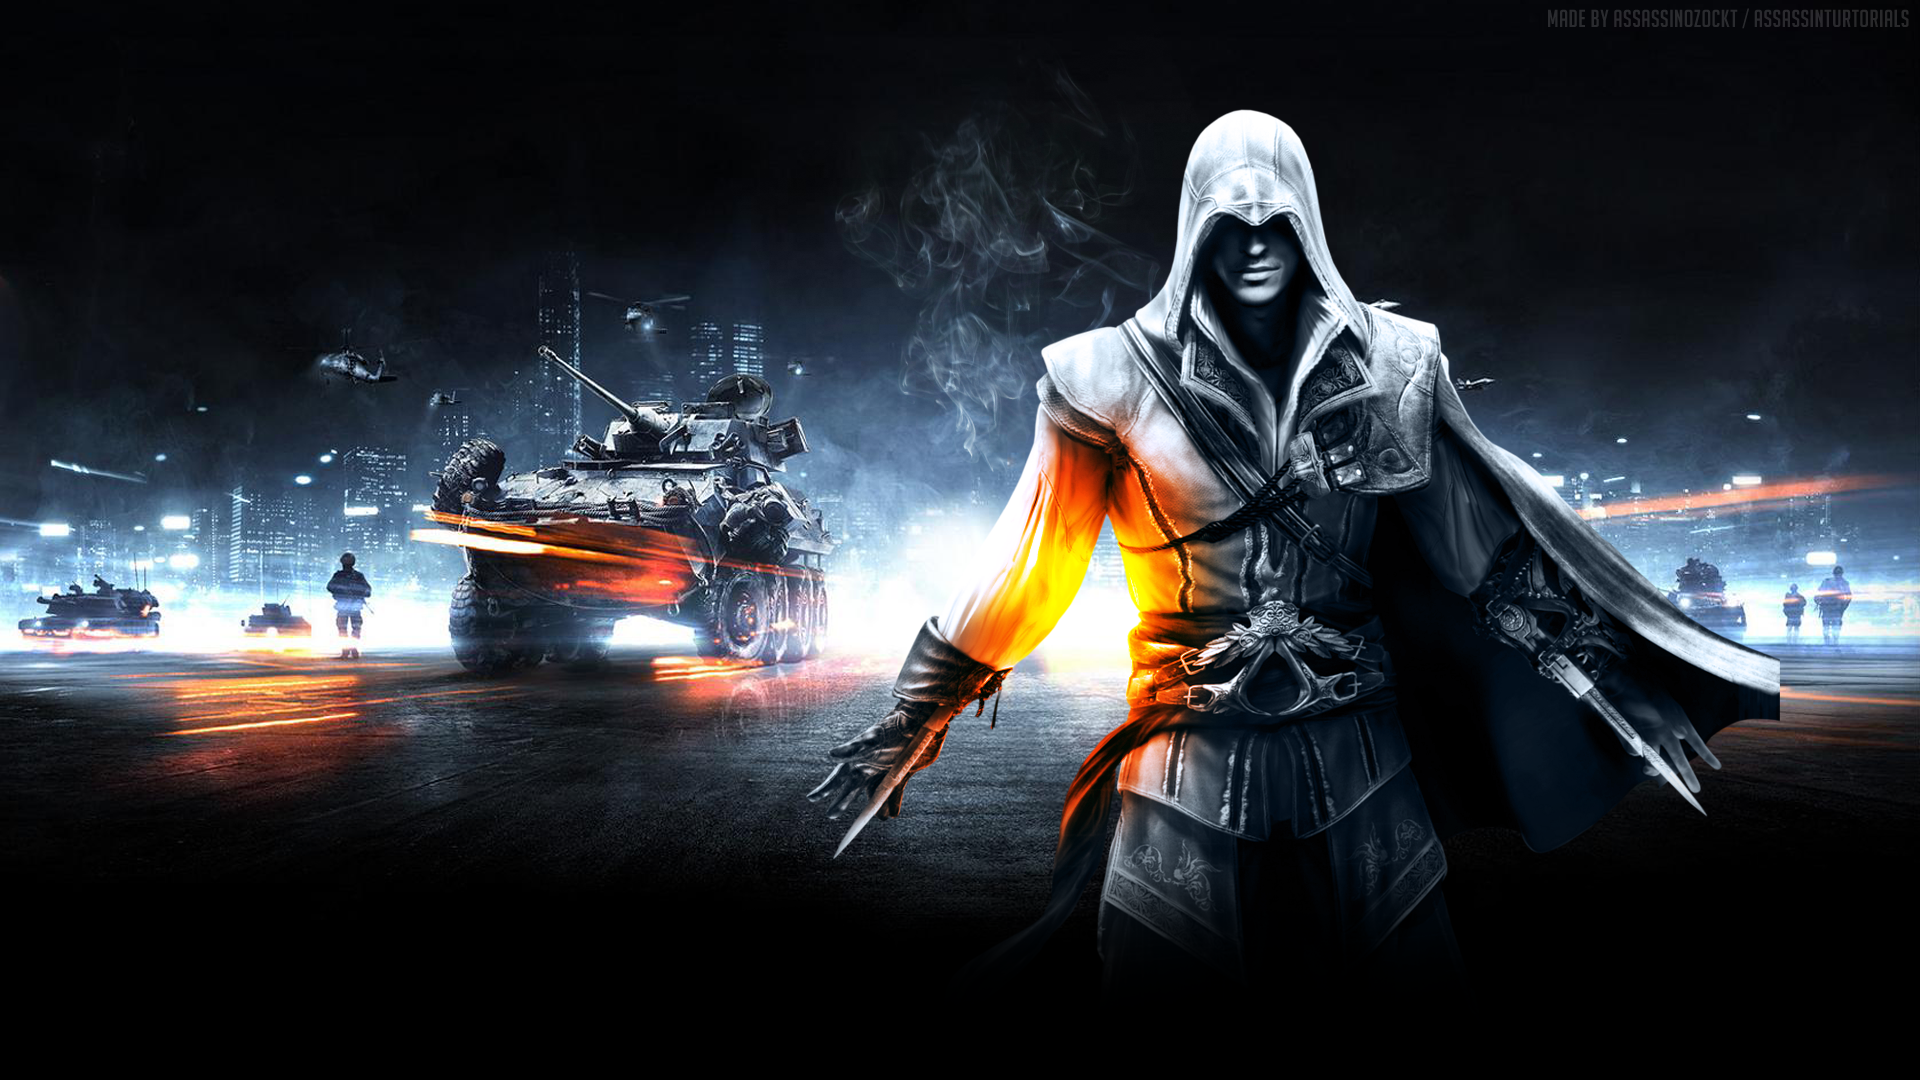 Video Game   Collage Assassins Creed Battlefield Wallpaper 1920x1080